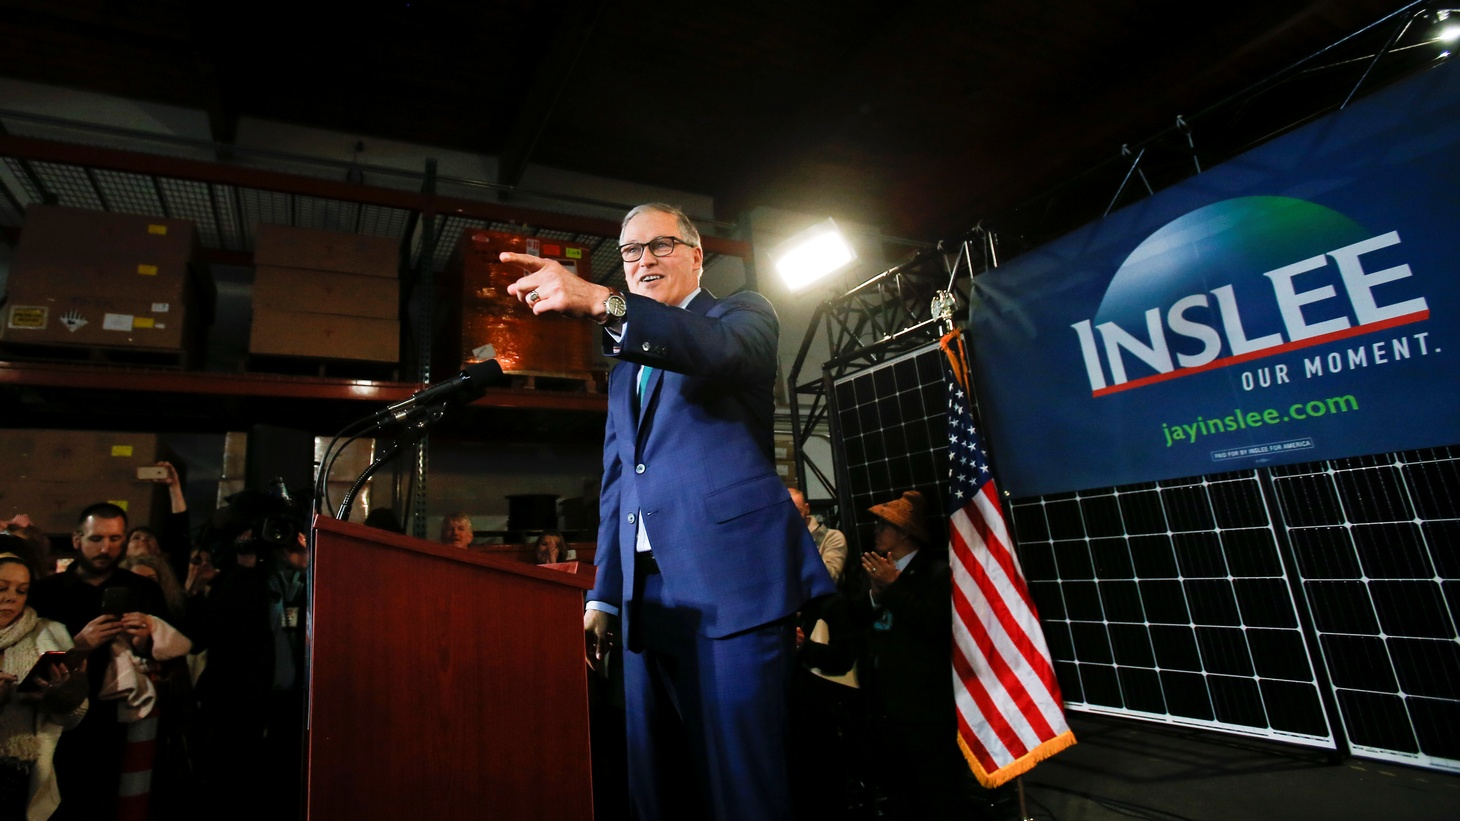 Washington state Governor Jay Inslee gestures to supporters during a news conference to announce his decision to seek the Democratic Party's nomination for president in 2020 at A&R Solar in Seattle, Washington, U.S., March 1, 2019.